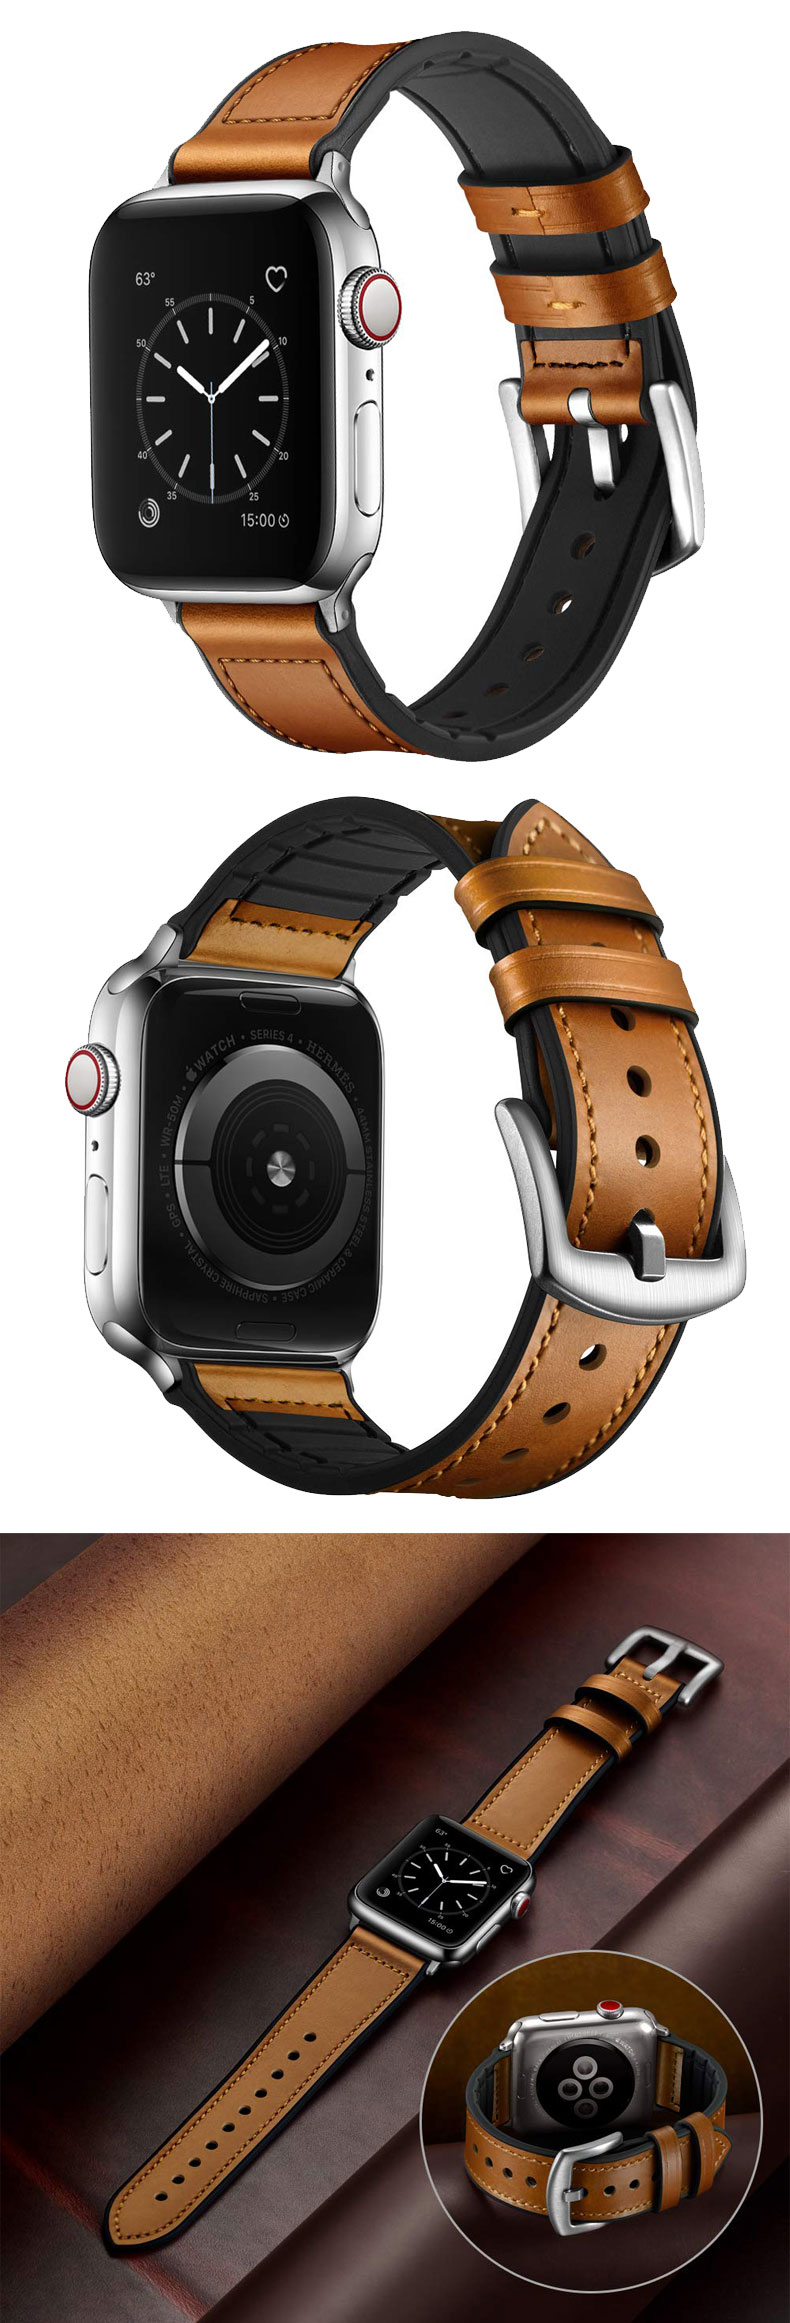 Hybrid Sports band For Apple Watch band 42mm 38mm iwatch 5 4 3 2 44mm 40mm vintage Genuine Leather Sweatproof strap Accessories